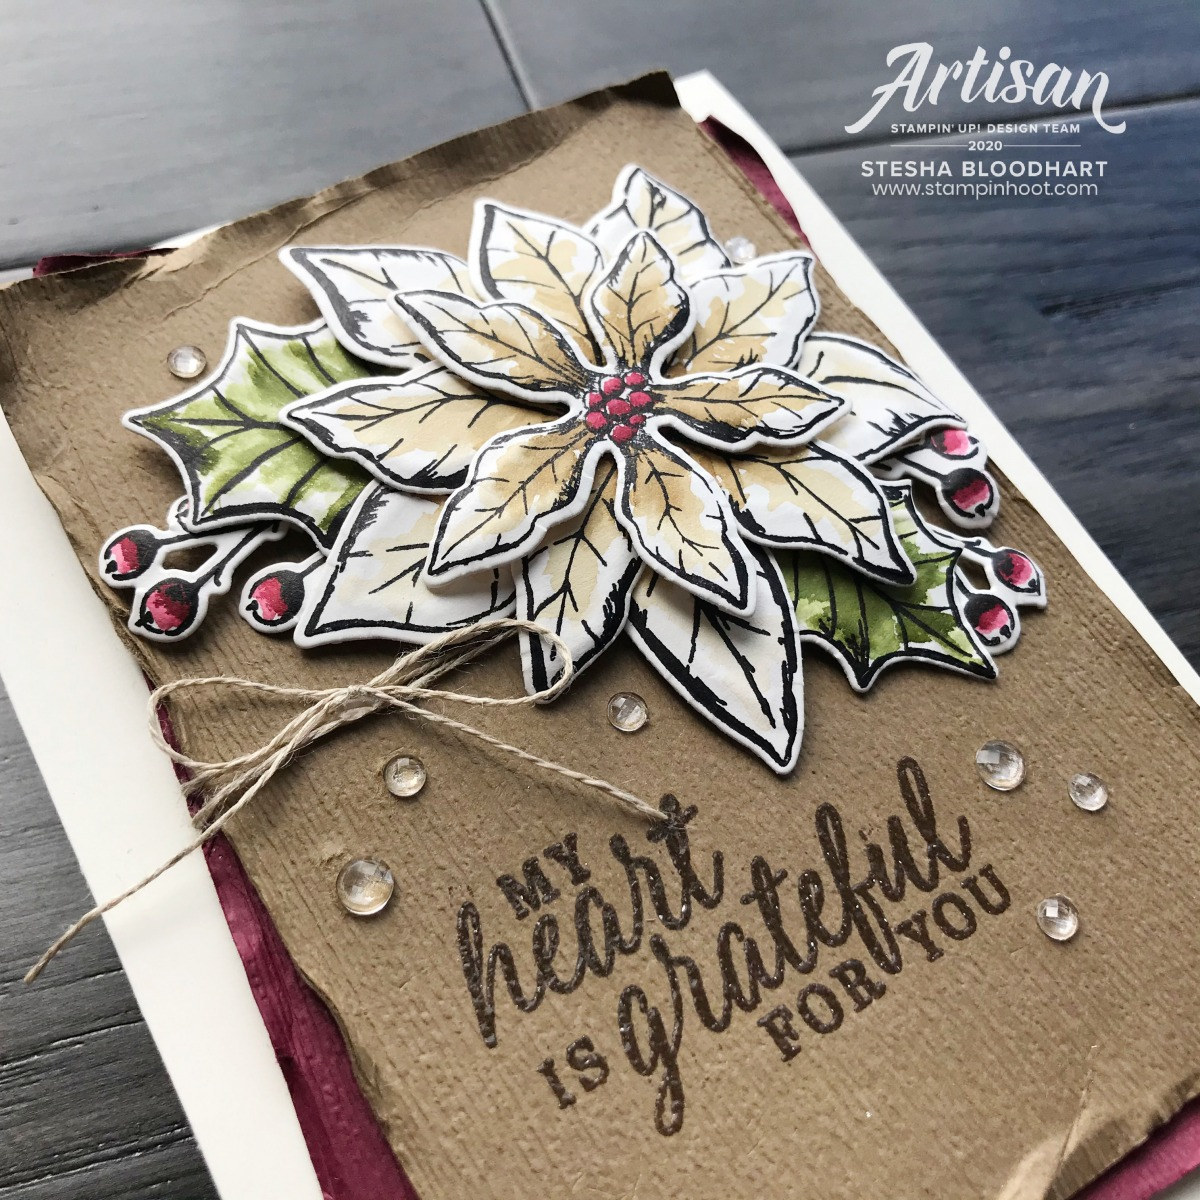 Poinsettia Petals & Beautiful Autumn Stamp Sets by Stampin' Up!